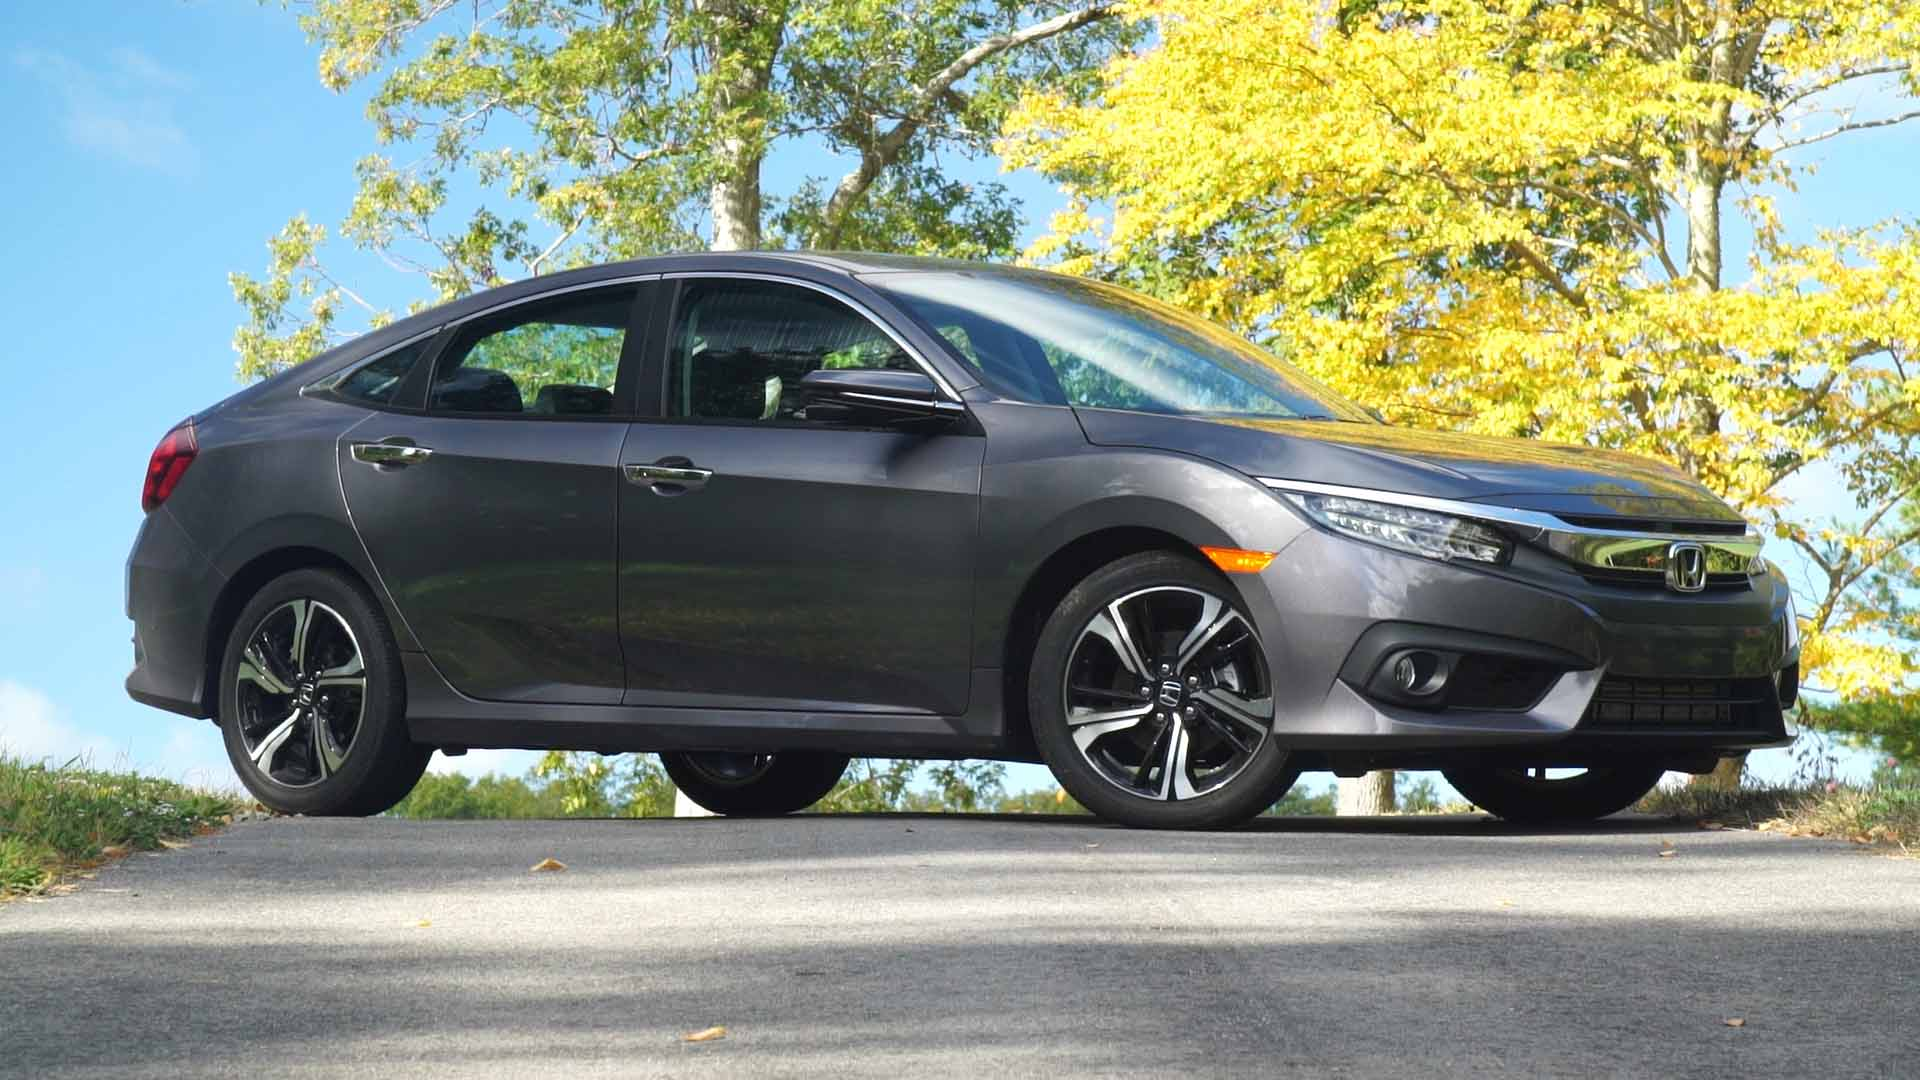 Honda Civic 2016 Vs 2017 >> Honda Civic 2016 2019 Quick Drive